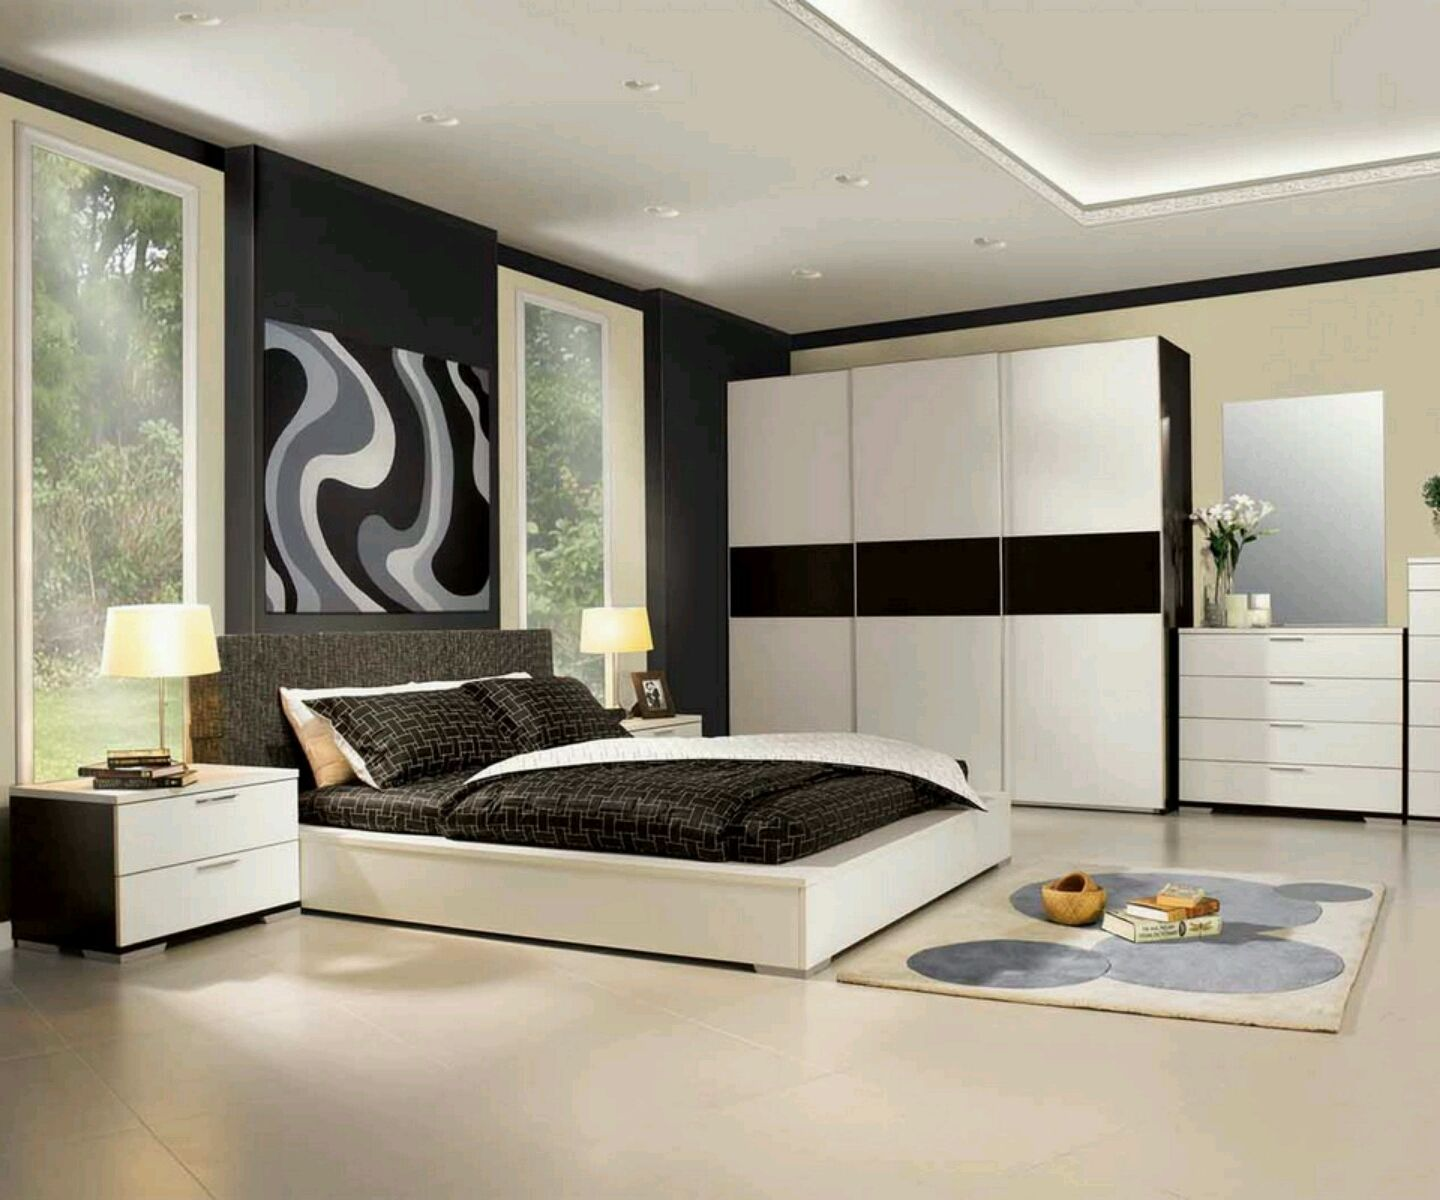 Home Furniture Designs Unique Modern Bedroom Furniture Design For More Pictures And Design Ideas . Decorating Design